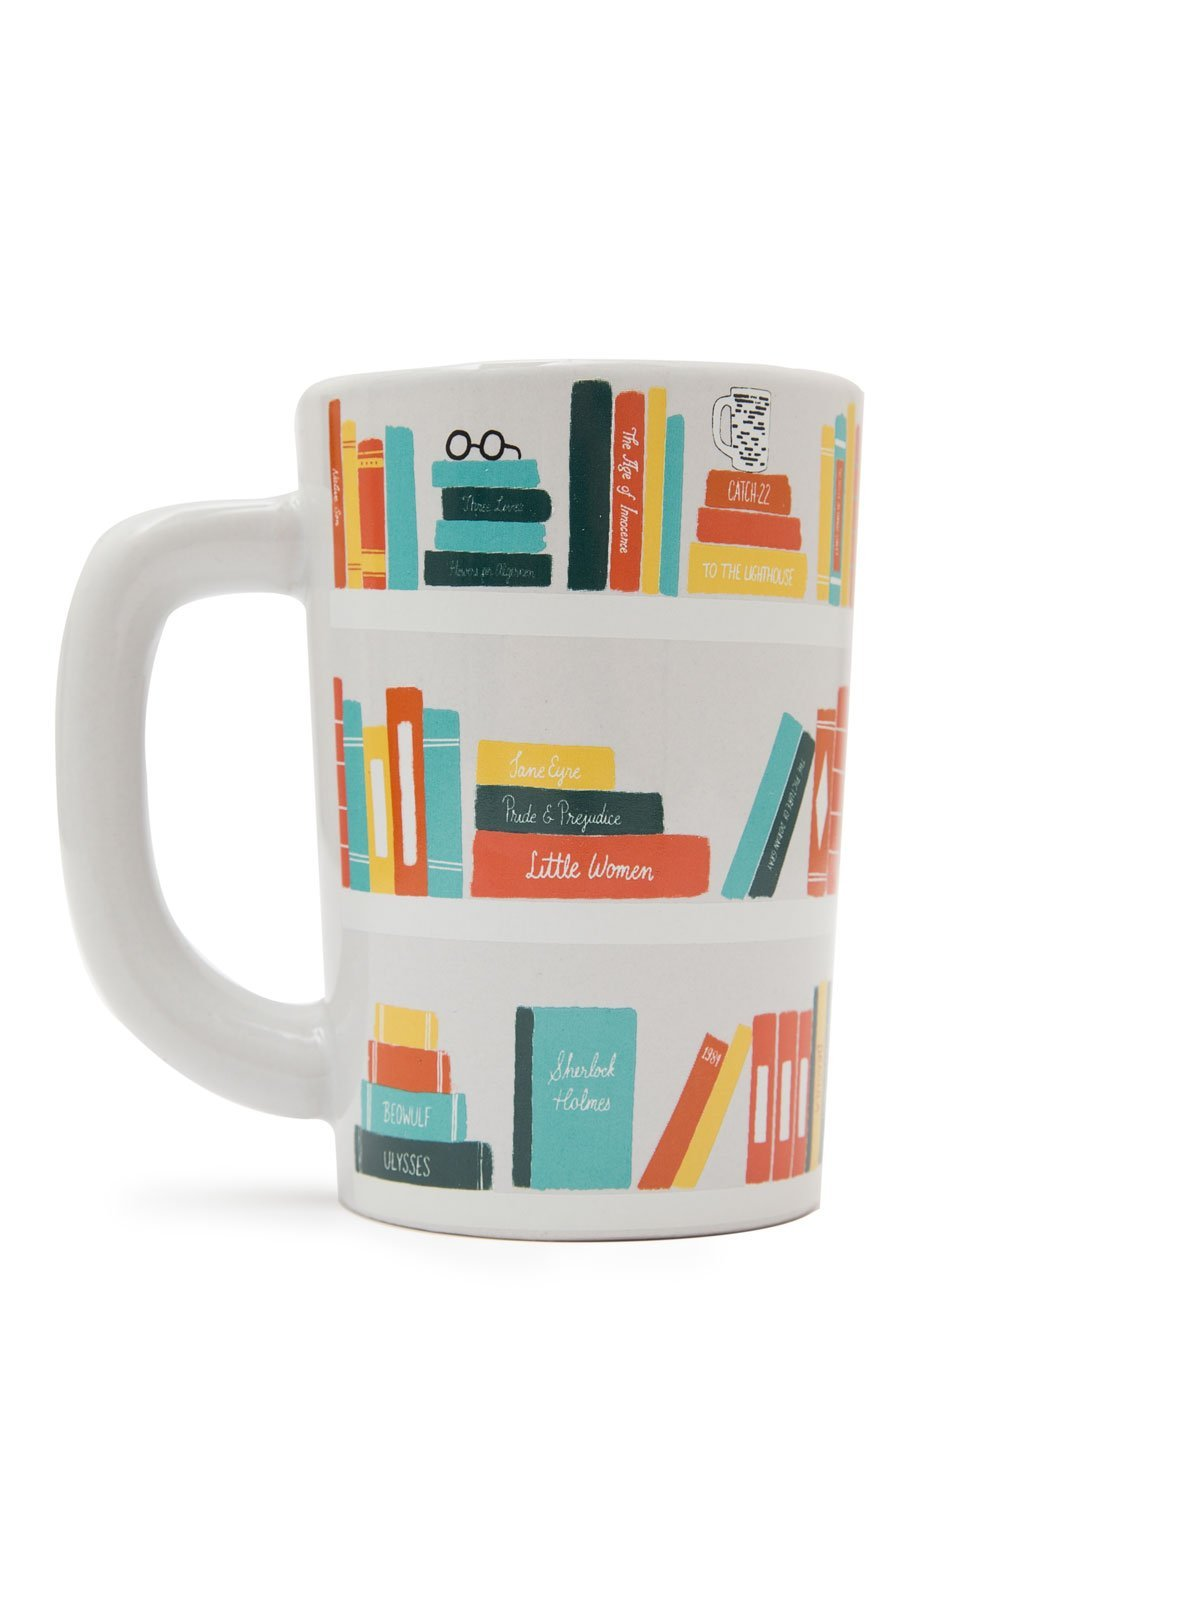 Out of Print Bookshelf Mug